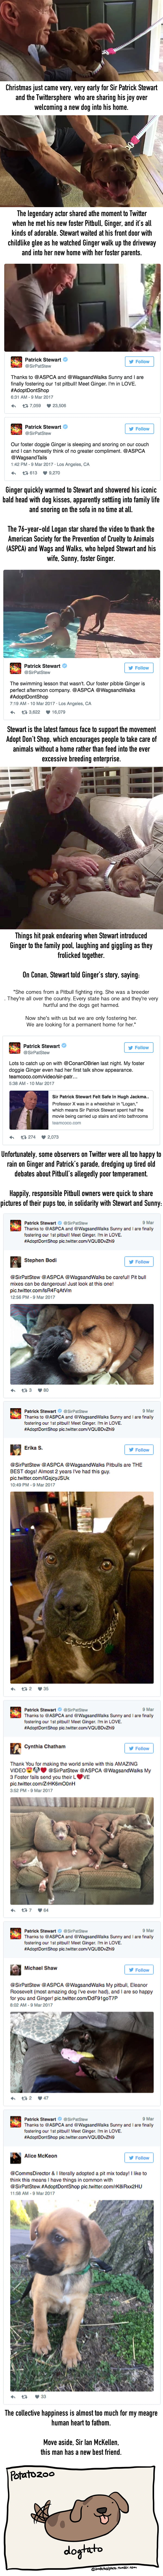 Patrick Stewart Adopted A Pitbull And Their First Meeting Is Amazing